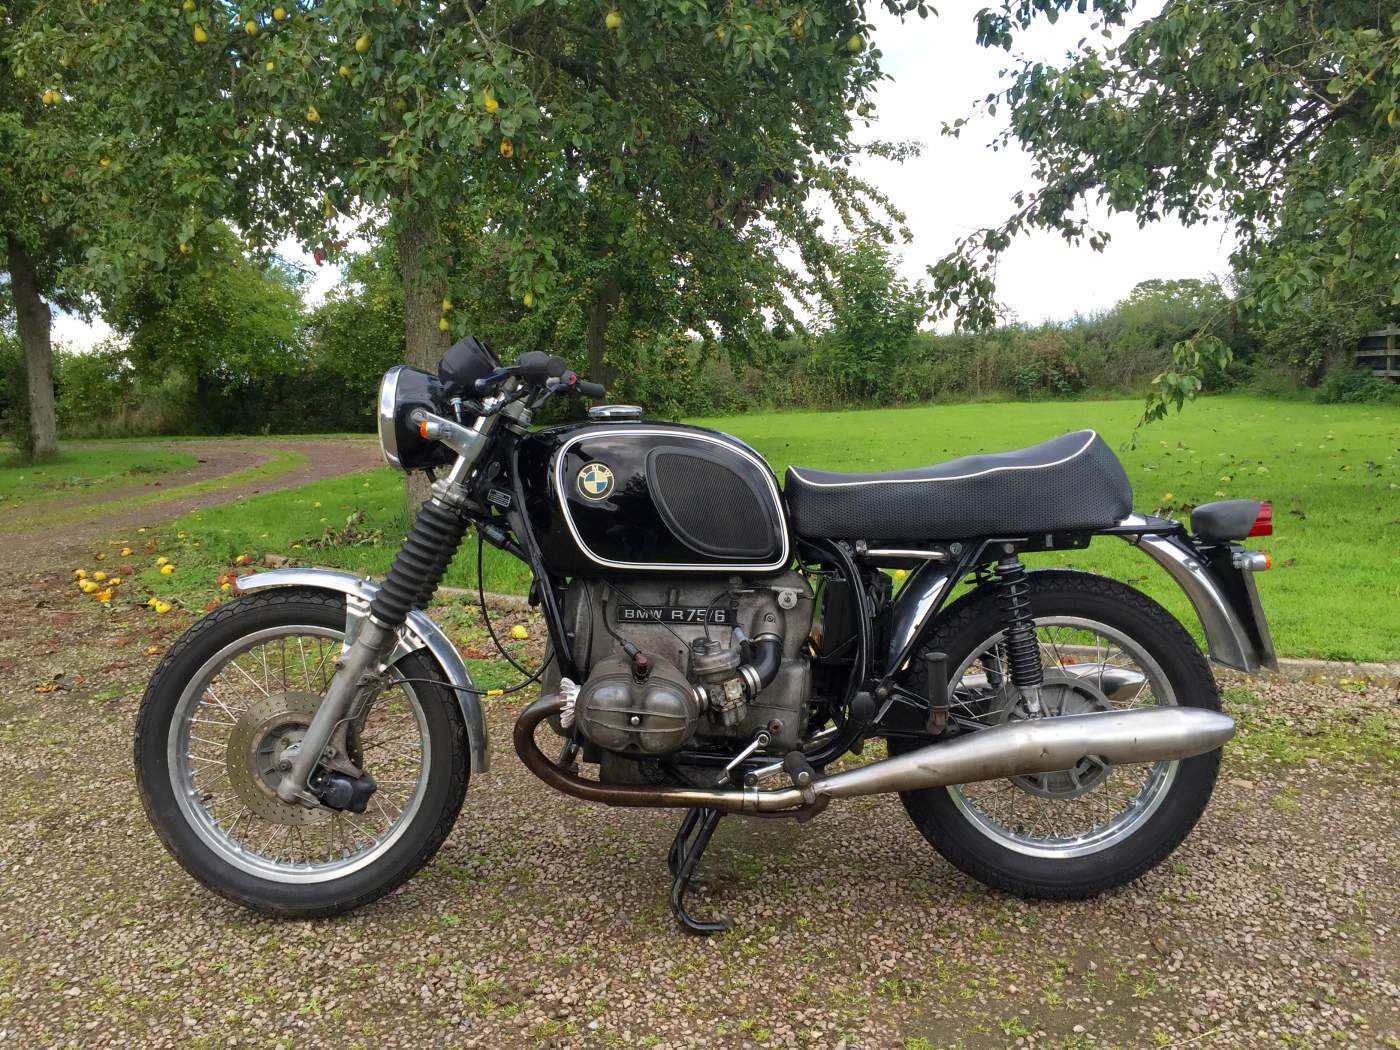 1976 bmw r75 6 we sell classic bikes. Black Bedroom Furniture Sets. Home Design Ideas